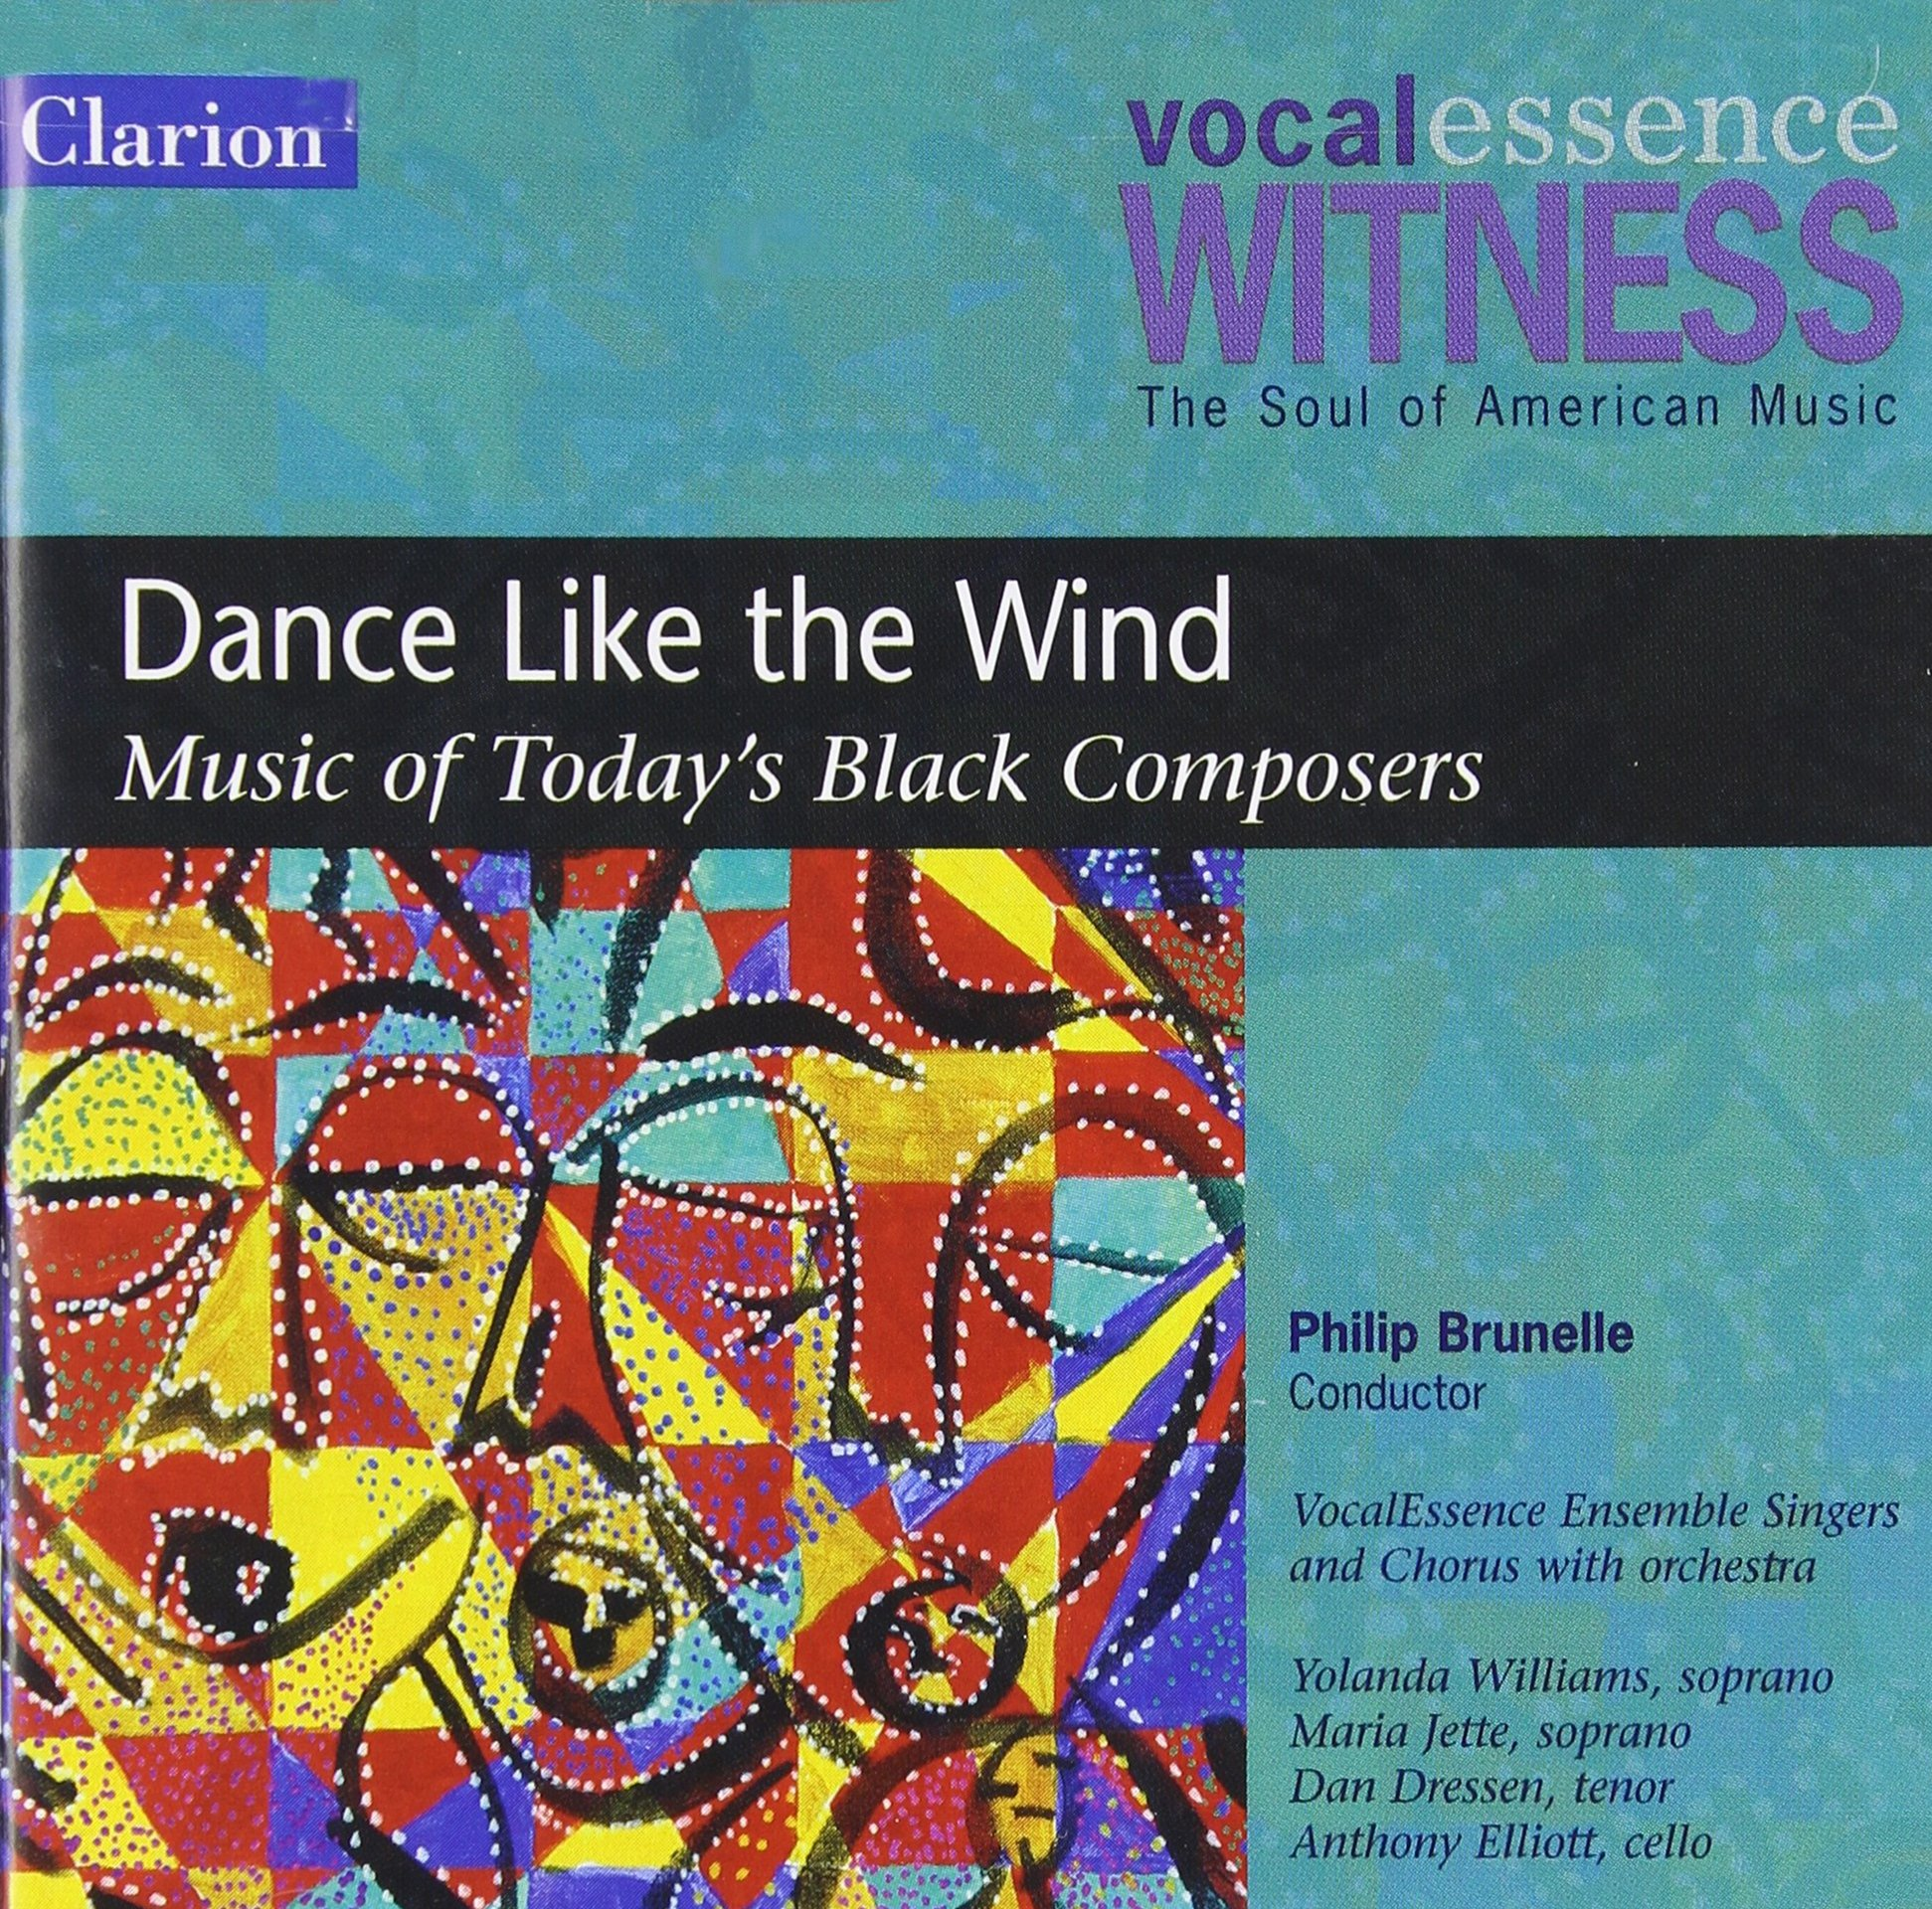 Witness: Dance Like the Wind - Music of Today's Black Composers by Clarion